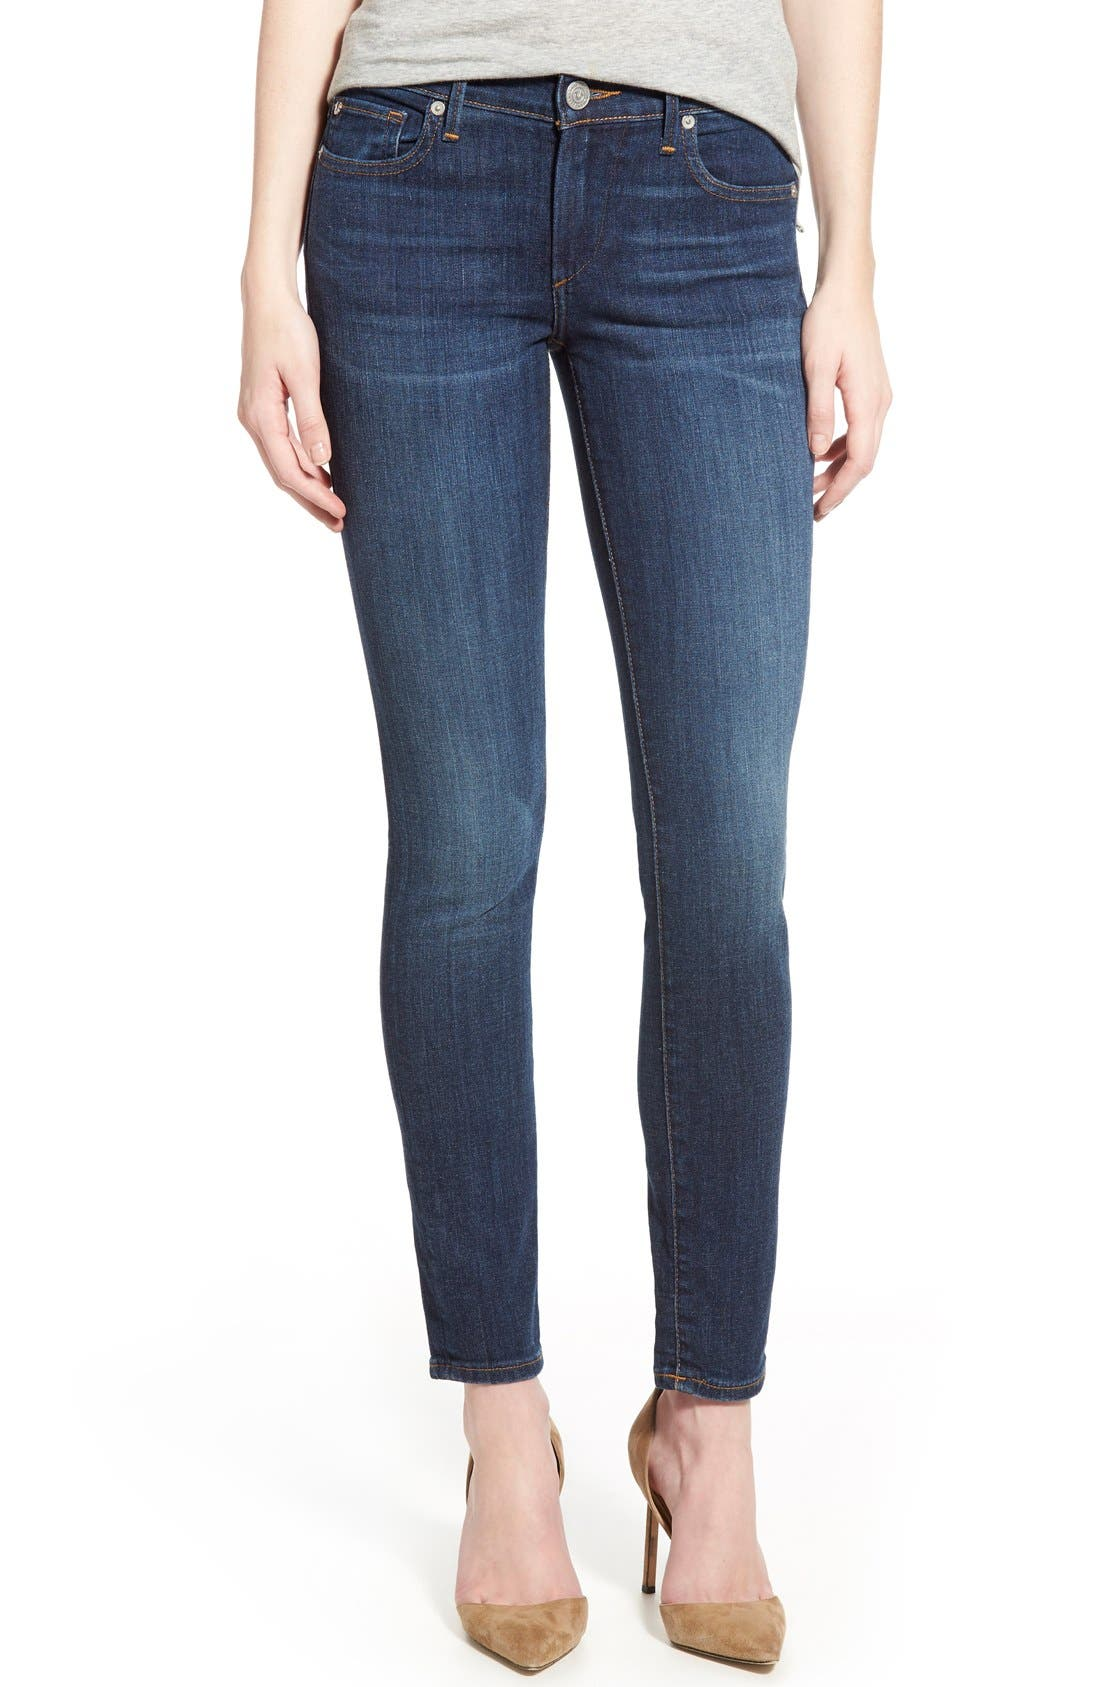 'Halle' Skinny Jeans,                         Main,                         color, 402